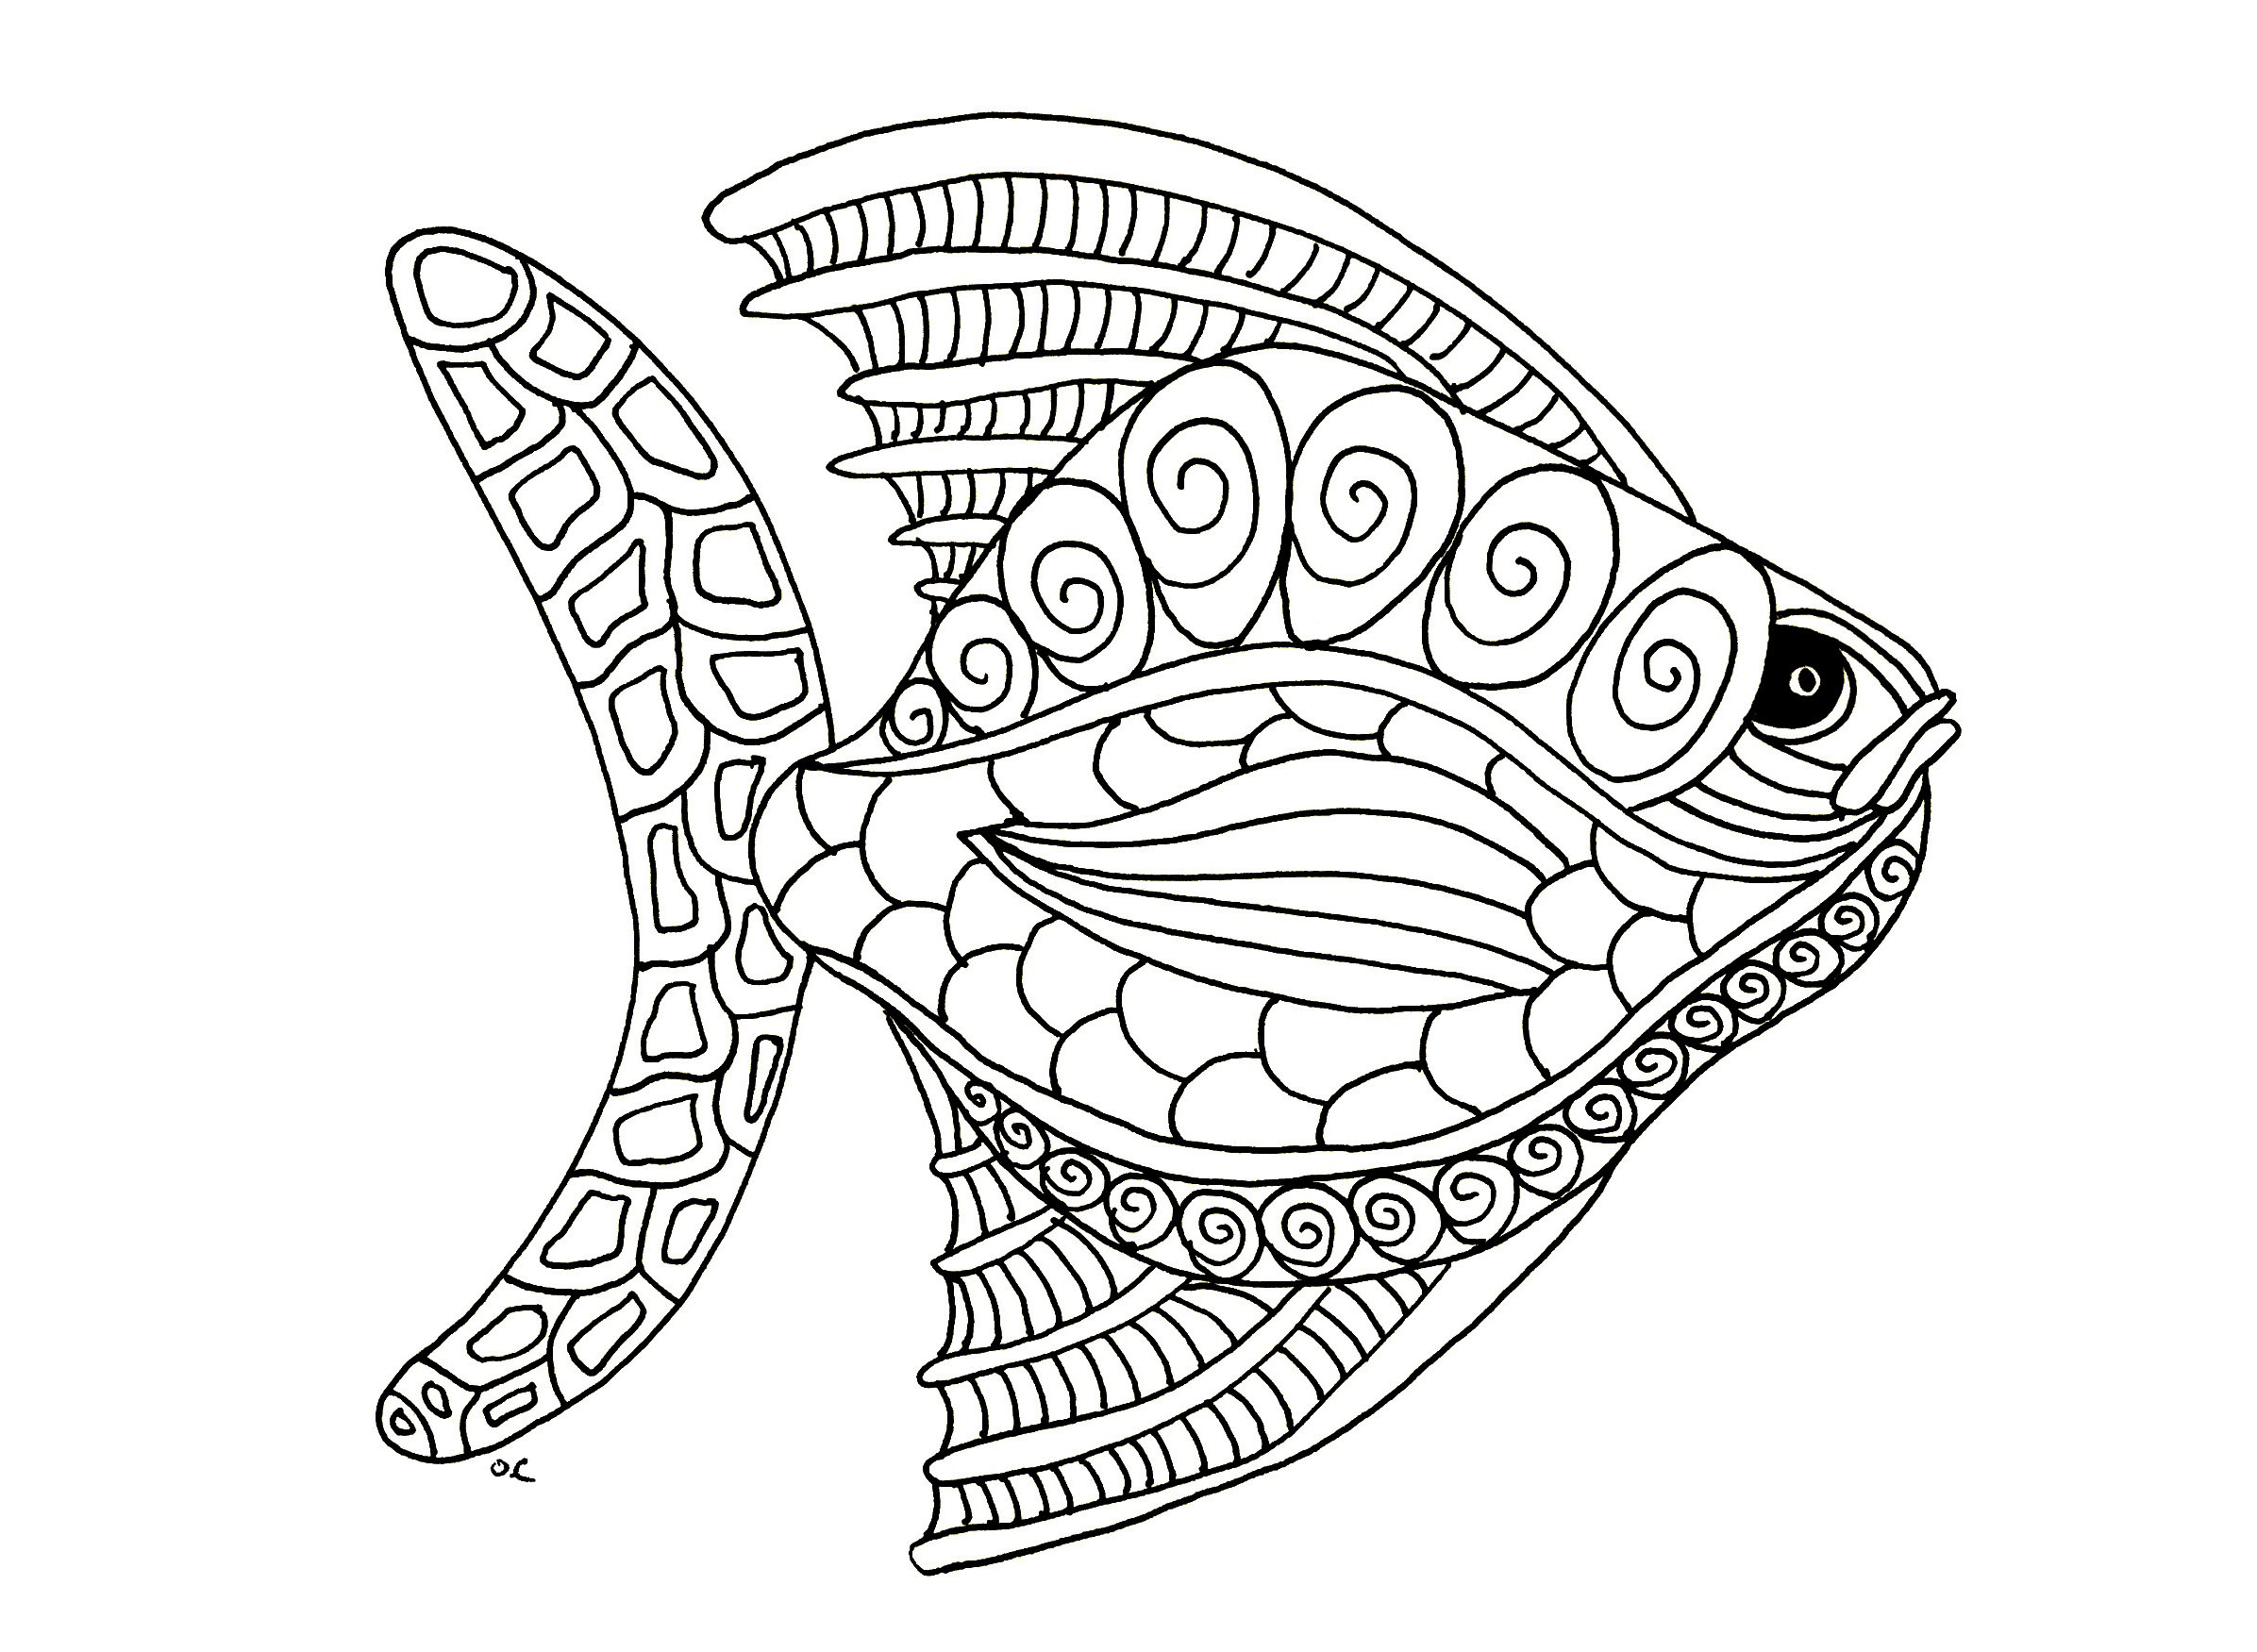 aduly coloring pages - photo#17